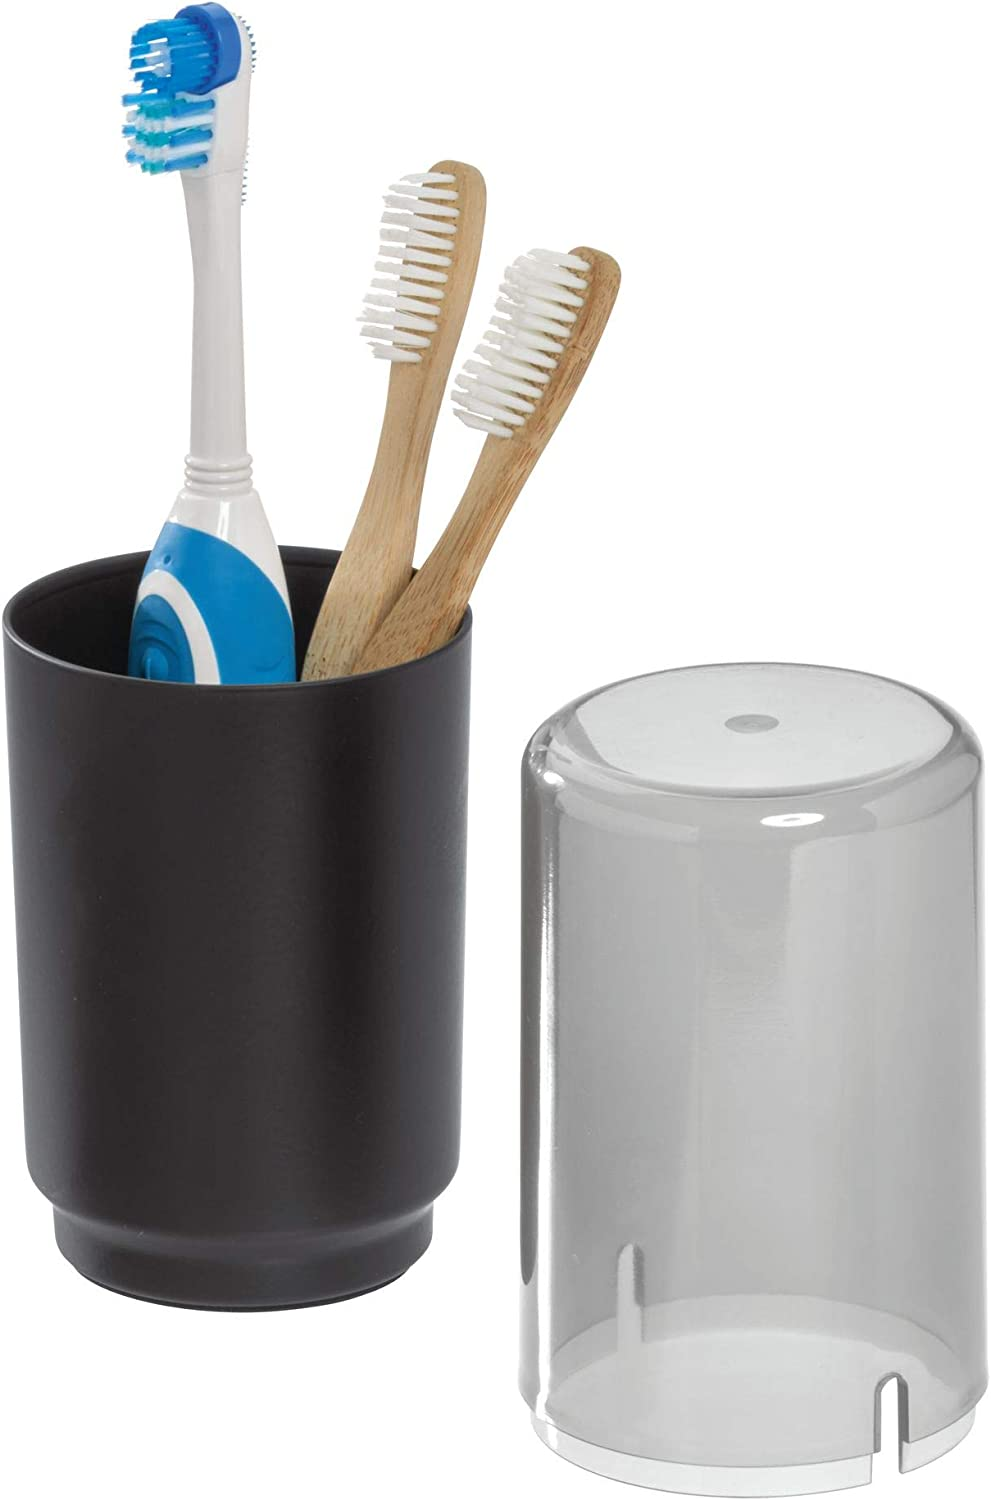 Idesign Austin Covered Holder Holds Regular And Electric Toothbrushes Home Kitchen